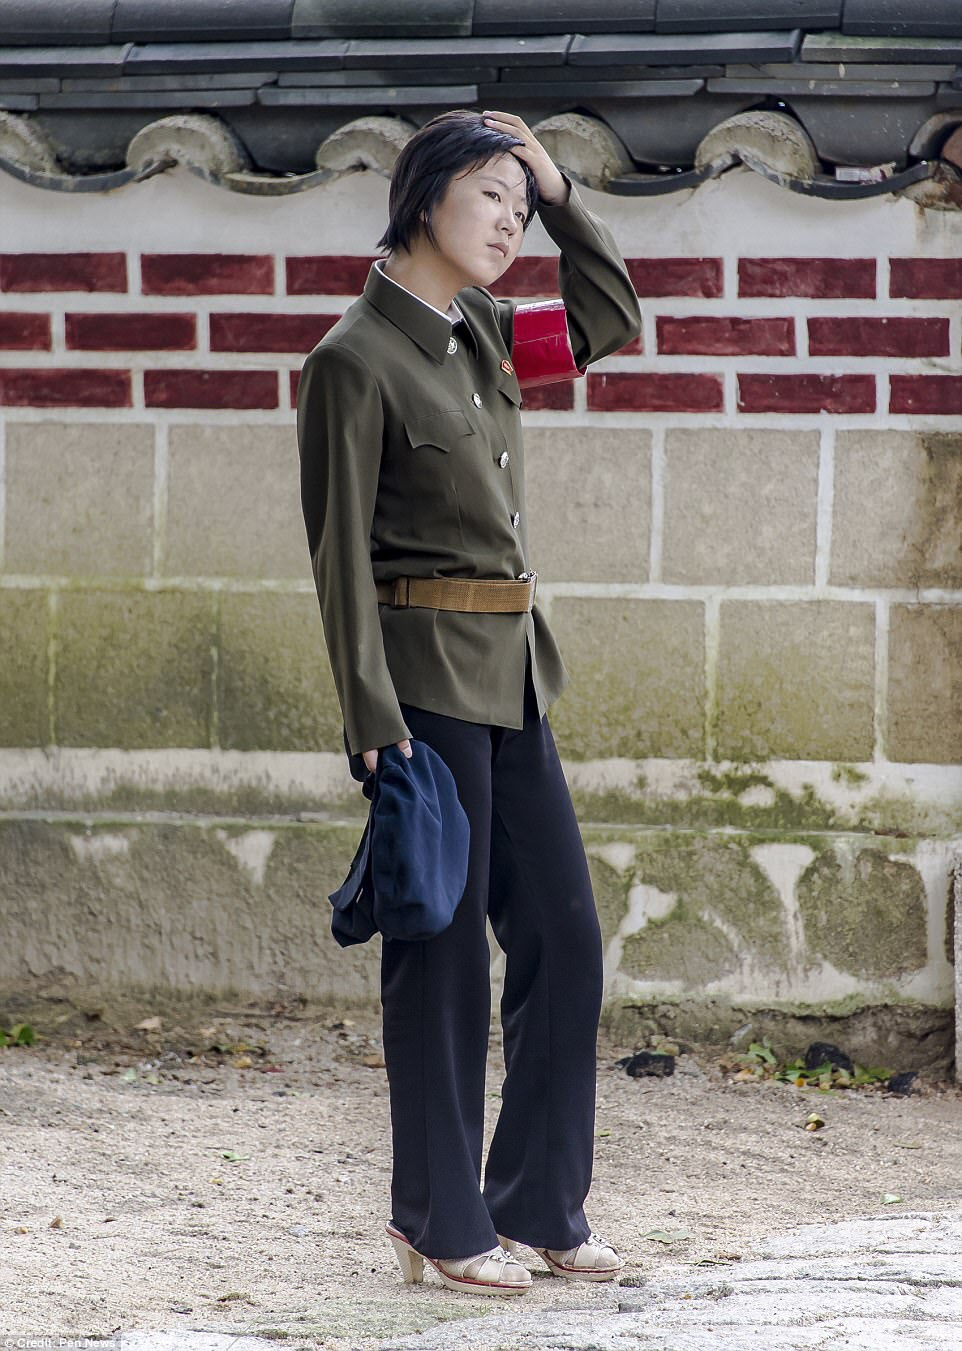 One photo shows a female soldier in military clothing on duty in high heels. The image was among a number smuggled out of the secretive country